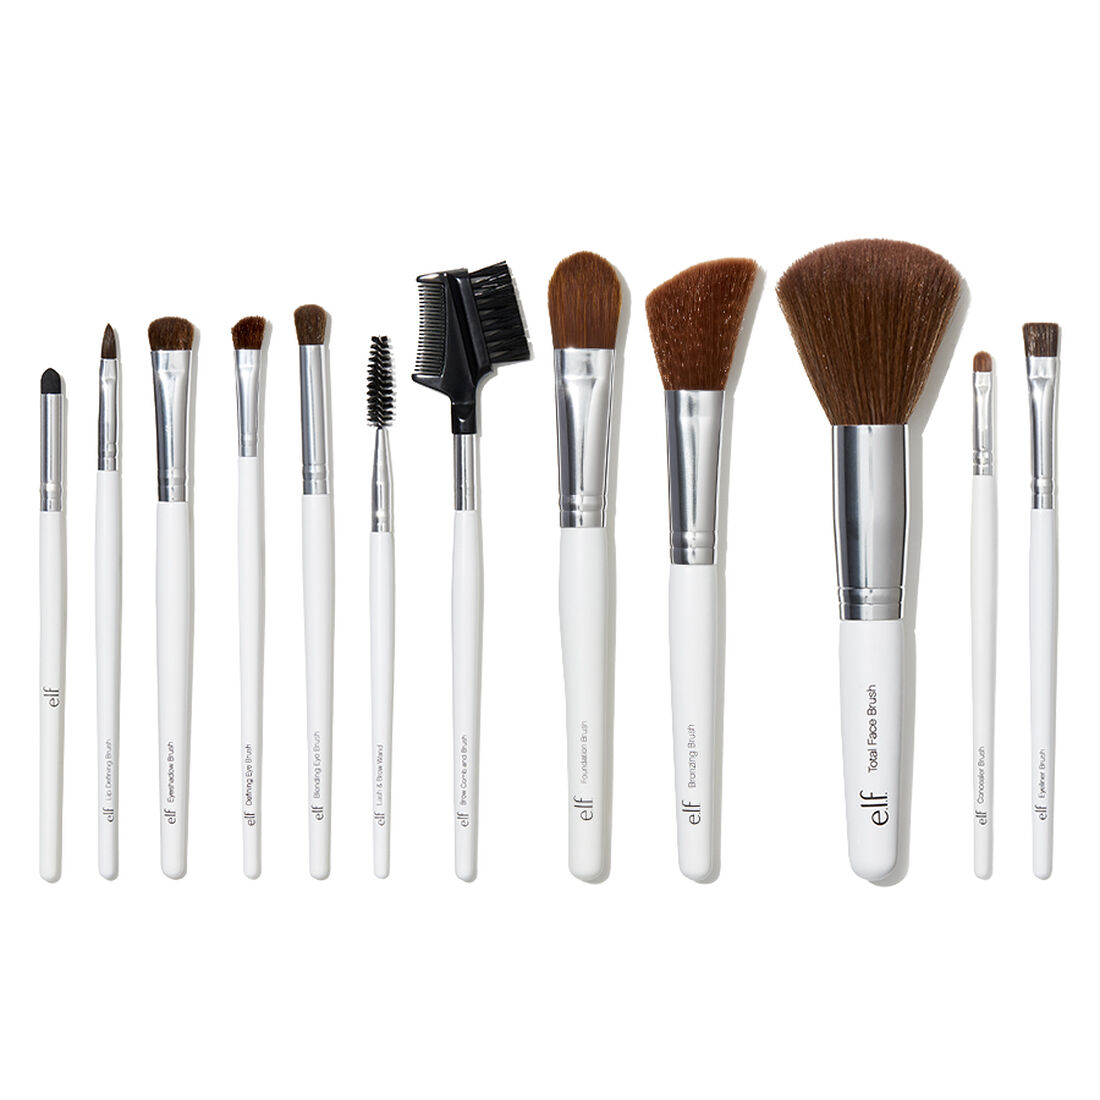 E.l.f Cosmetics - Professional Set of 12 Brushes